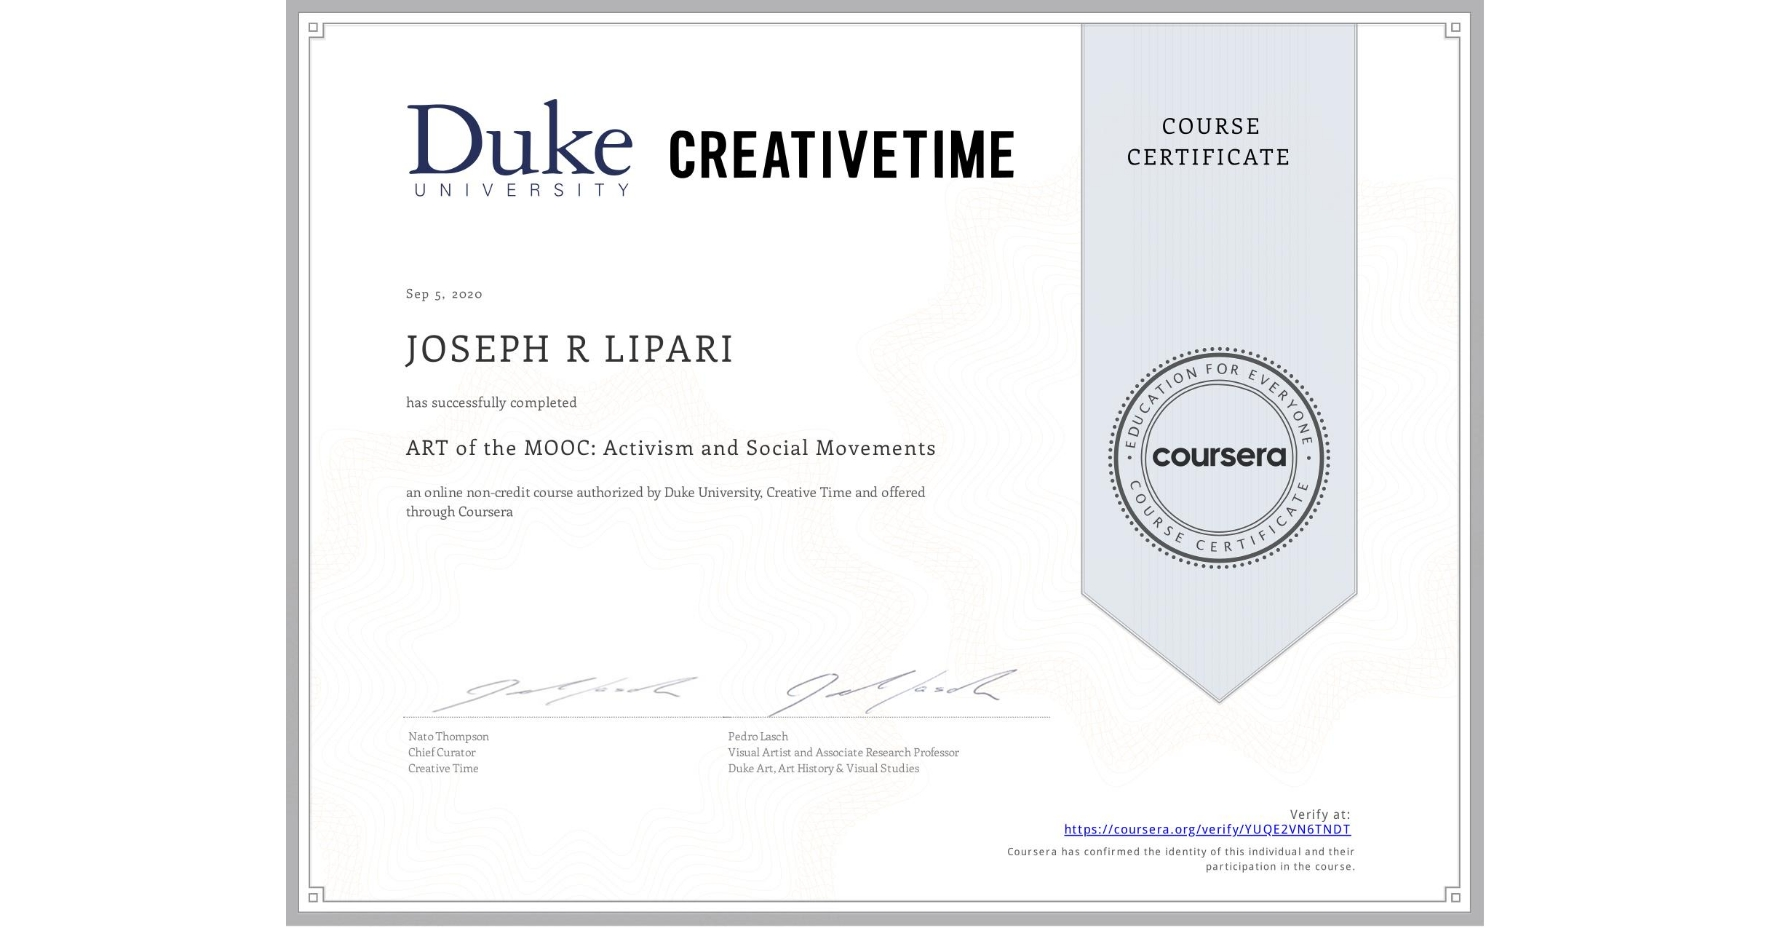 View certificate for JOSEPH R  LIPARI, ART of the MOOC: Activism and Social Movements, an online non-credit course authorized by Duke University & Creative Time  and offered through Coursera